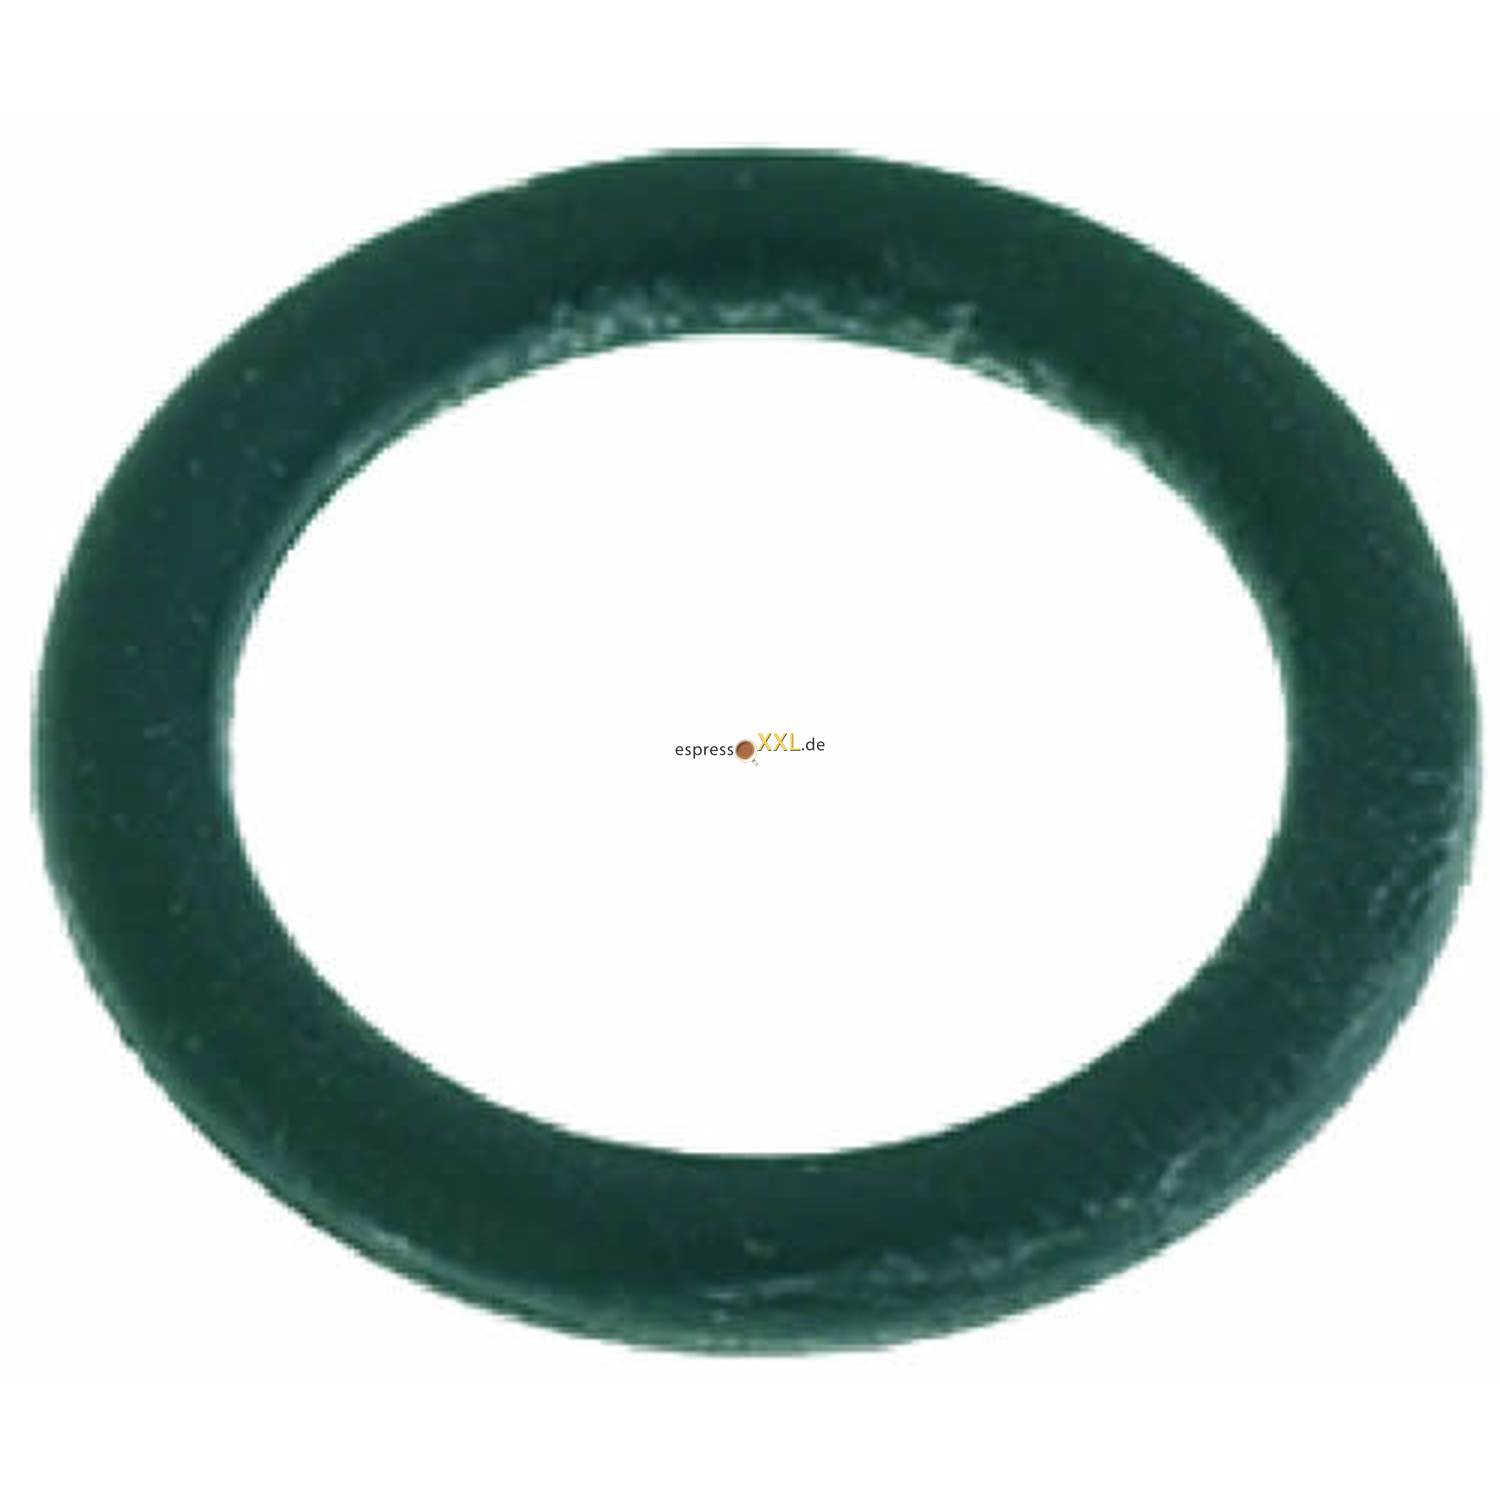 DICHTUNG O-RING | 04075 EPDM | ID ø 18,64x3,53mm | *** MODELLE SIEHE TABELLE ***